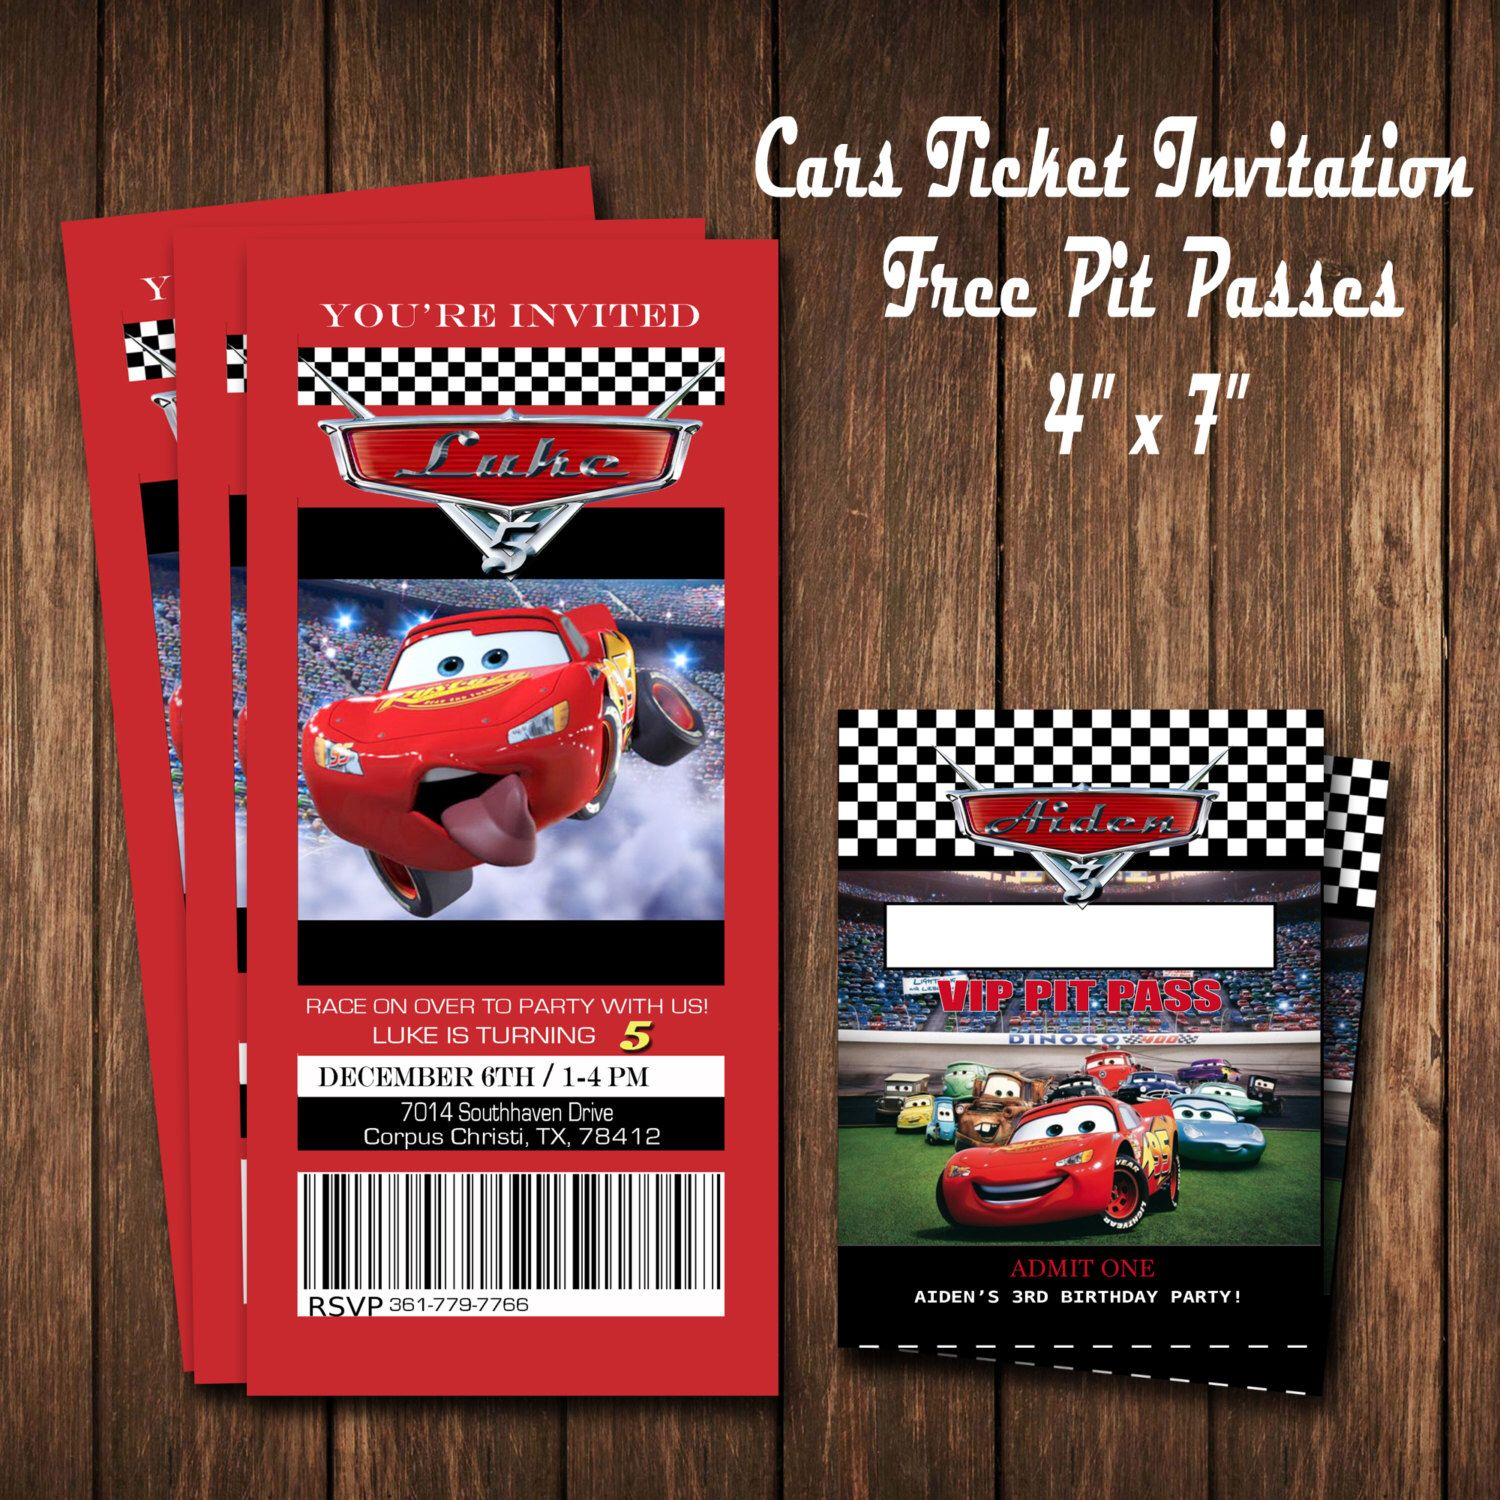 disney cars party invitation by tlcsquared on etsy https www etsy